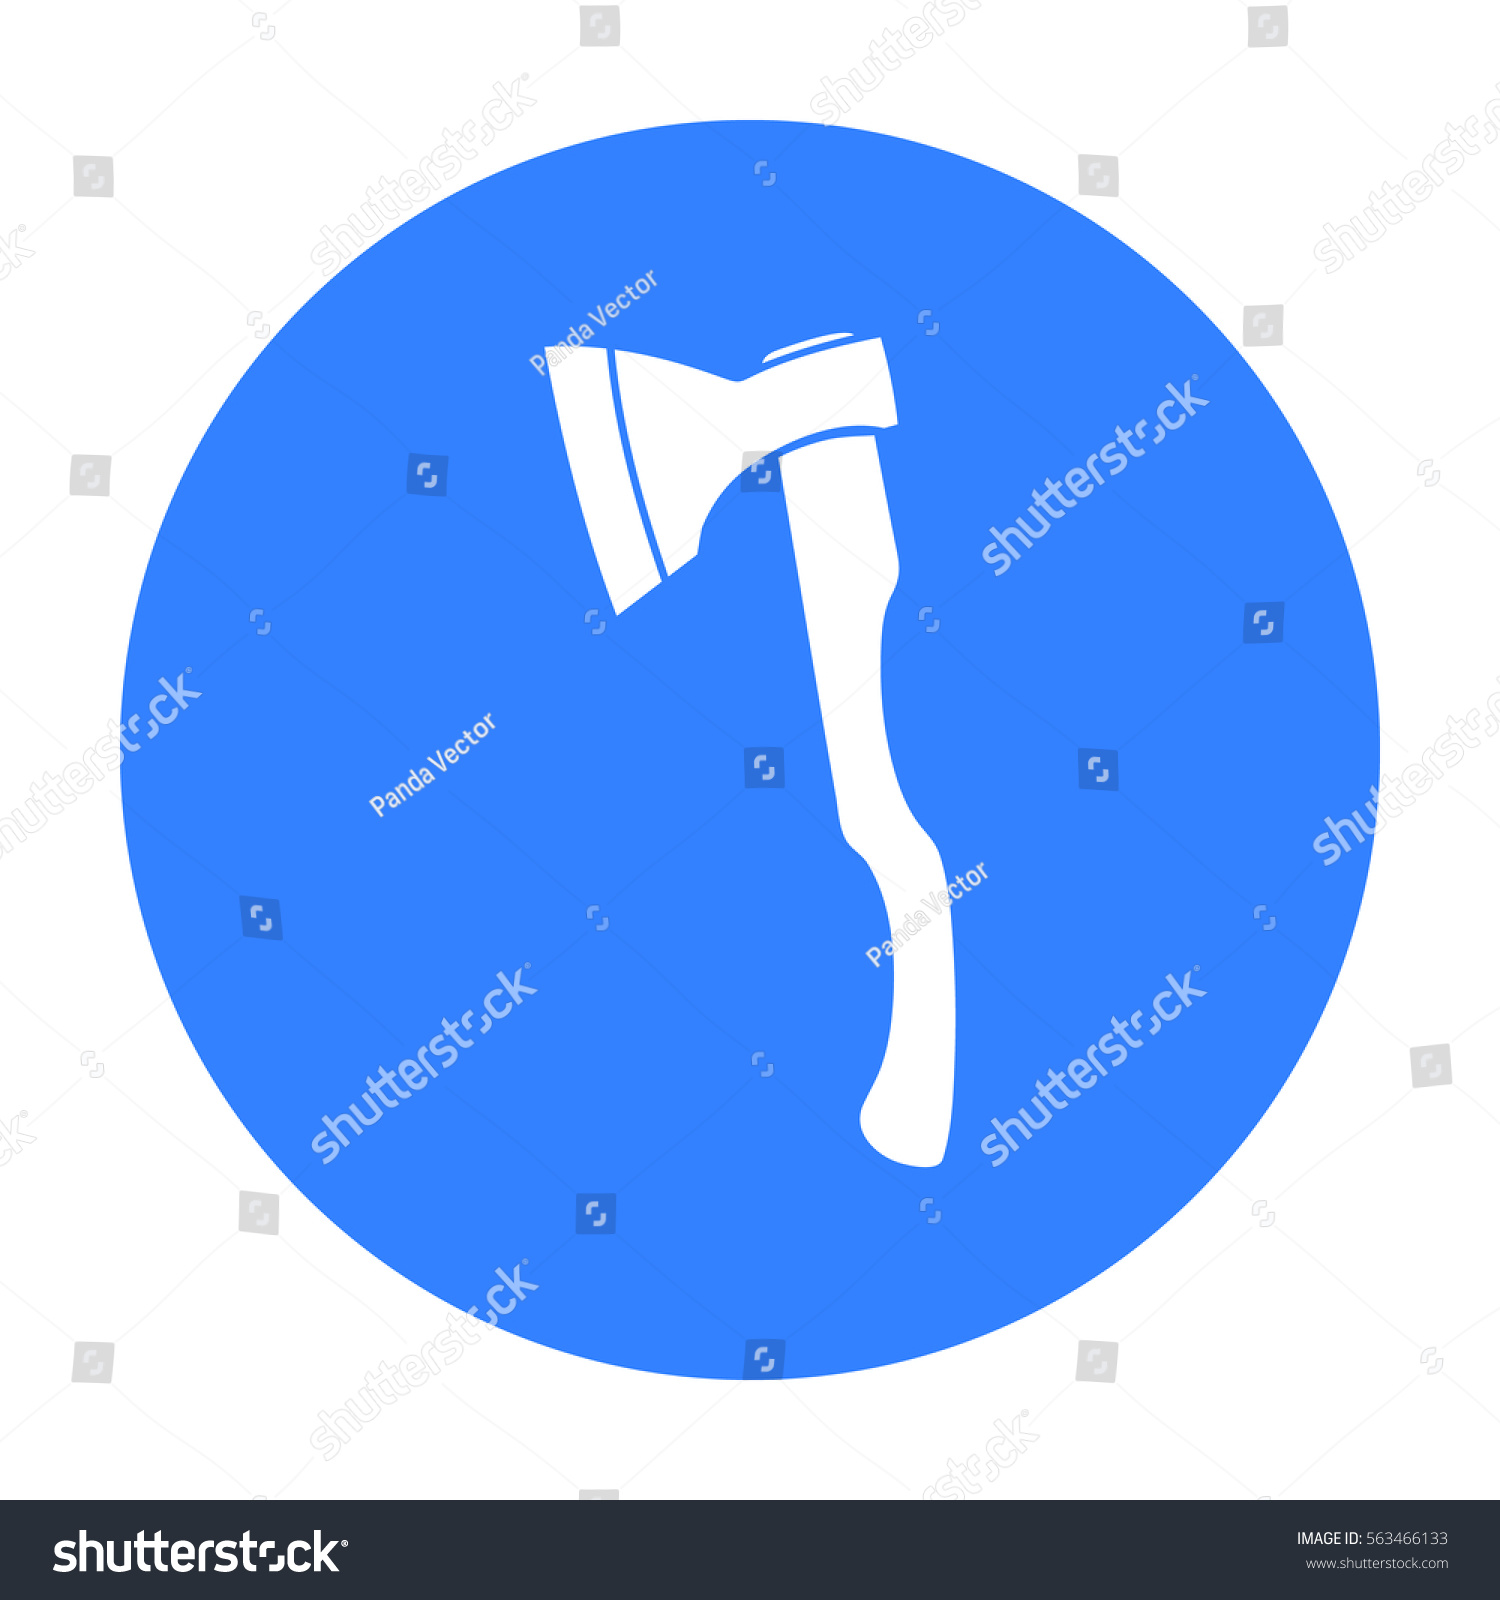 Axe icon black style isolated on stock vector 563466133 shutterstock axe icon in black style isolated on white background sawmill and timber symbol stock vector buycottarizona Choice Image